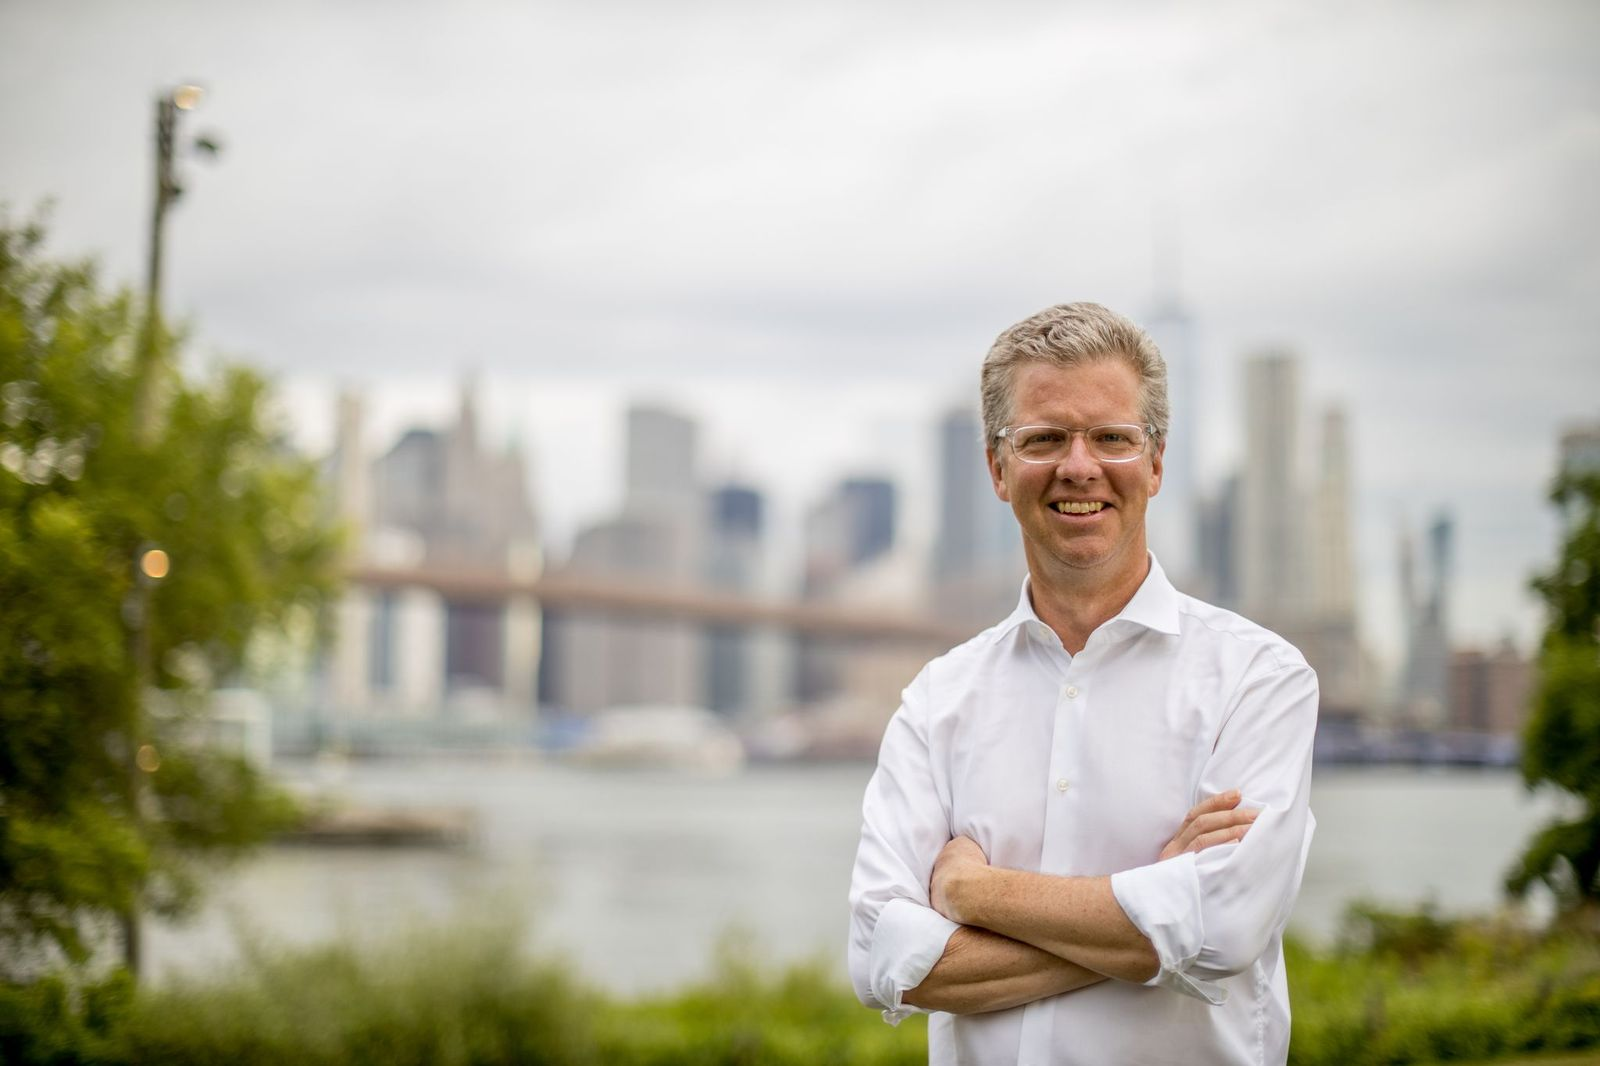 Can Shaun Donovan Win the 2021 Mayor's Race? Campaign Pitch Charts Path